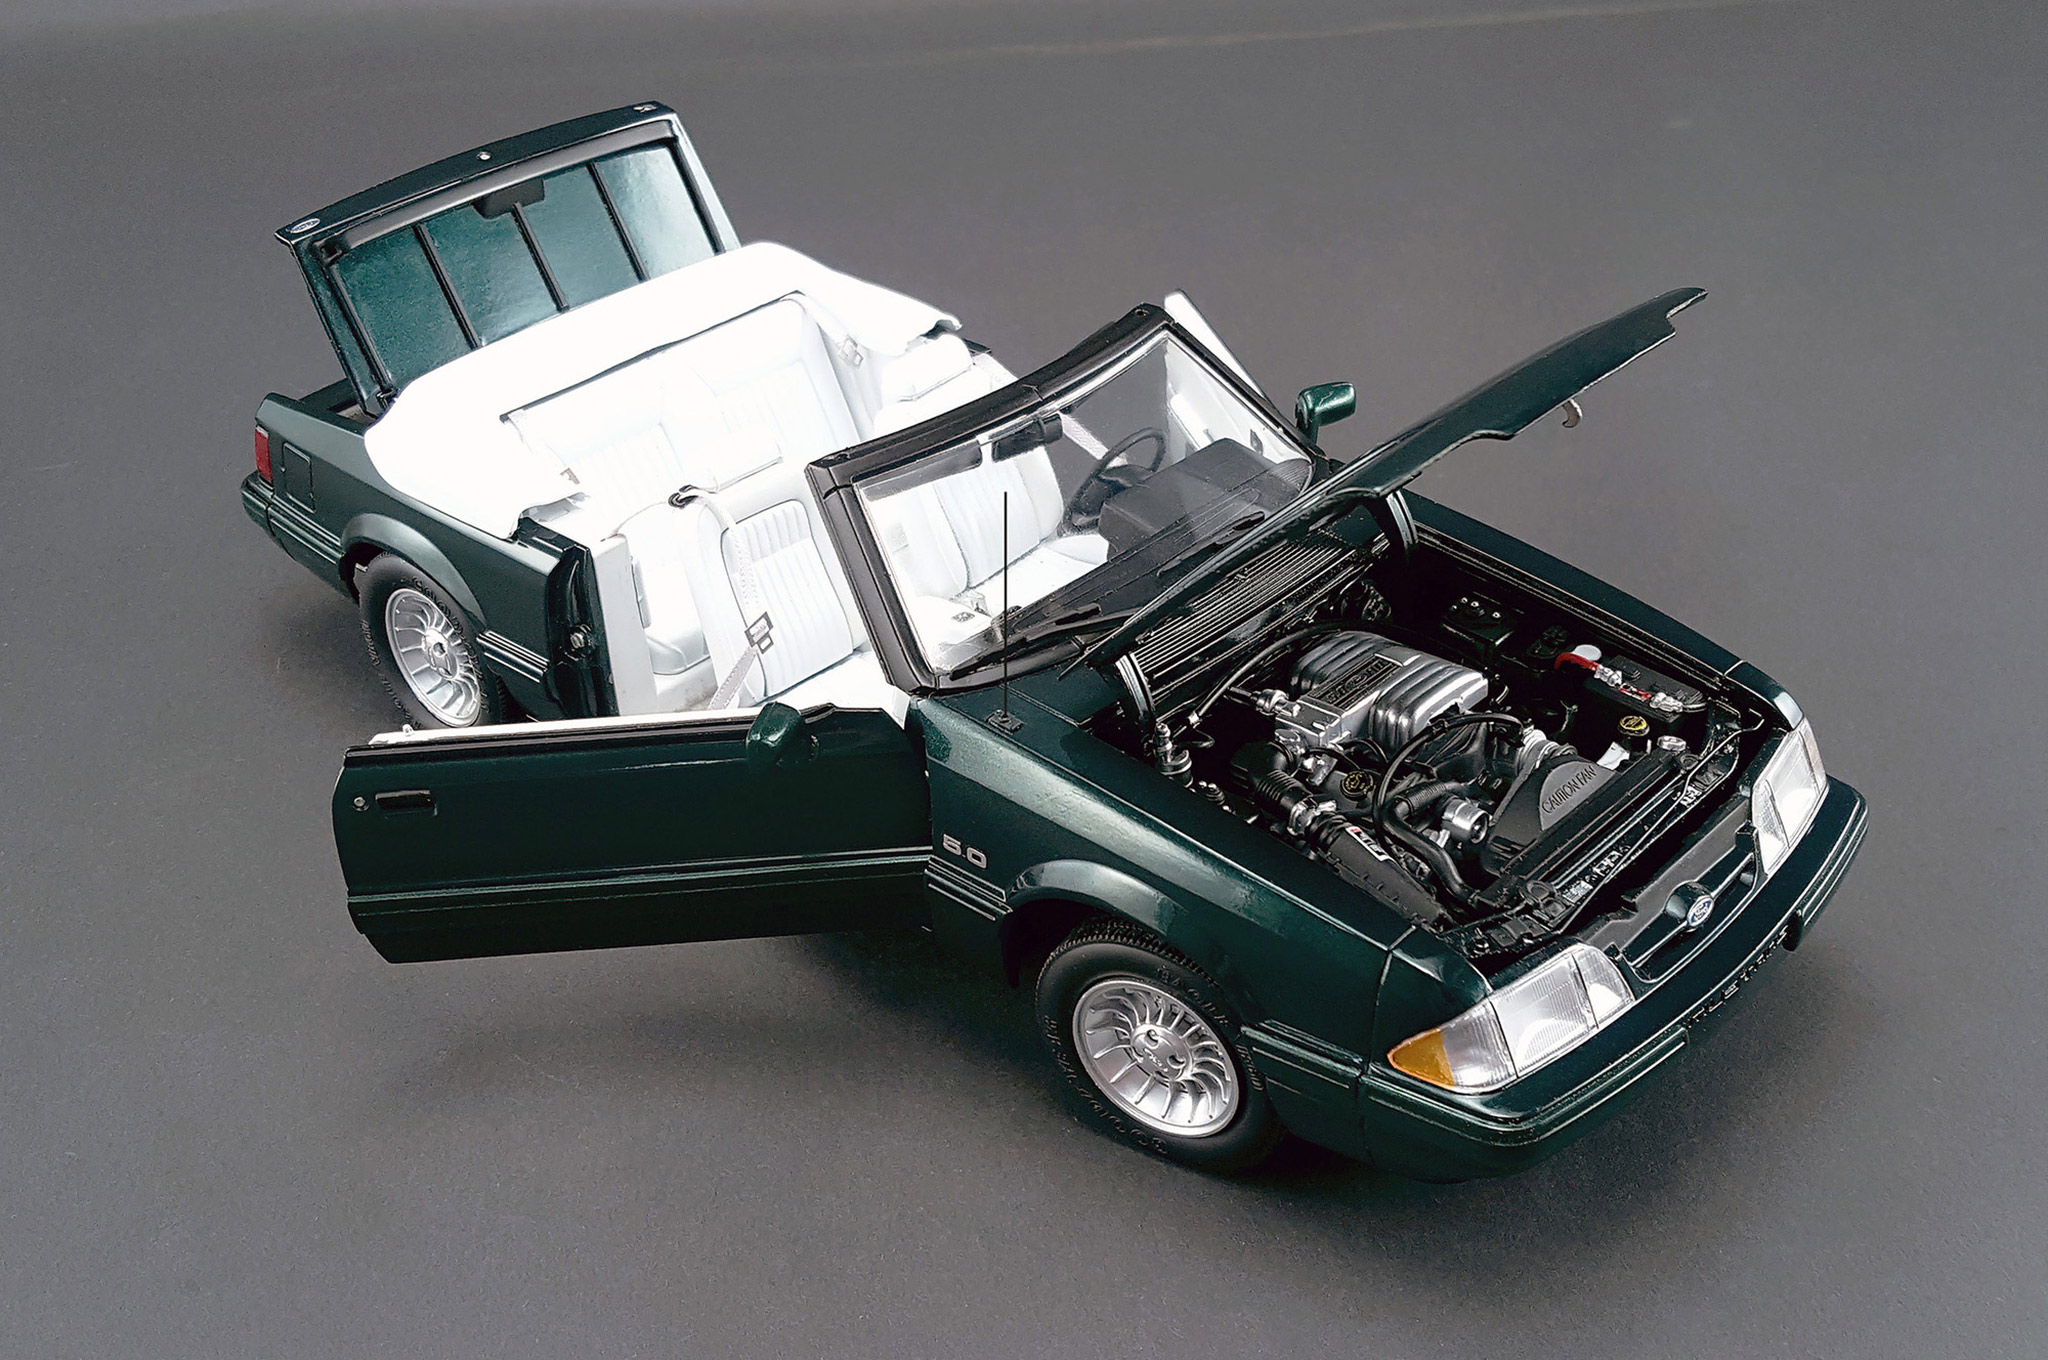 The GMP diecast details are extraordinary, including articulating seats with cloth seatbelts, a fully detailed engine bay, authentic Goodyear Eagle VR60 tires, and much more.